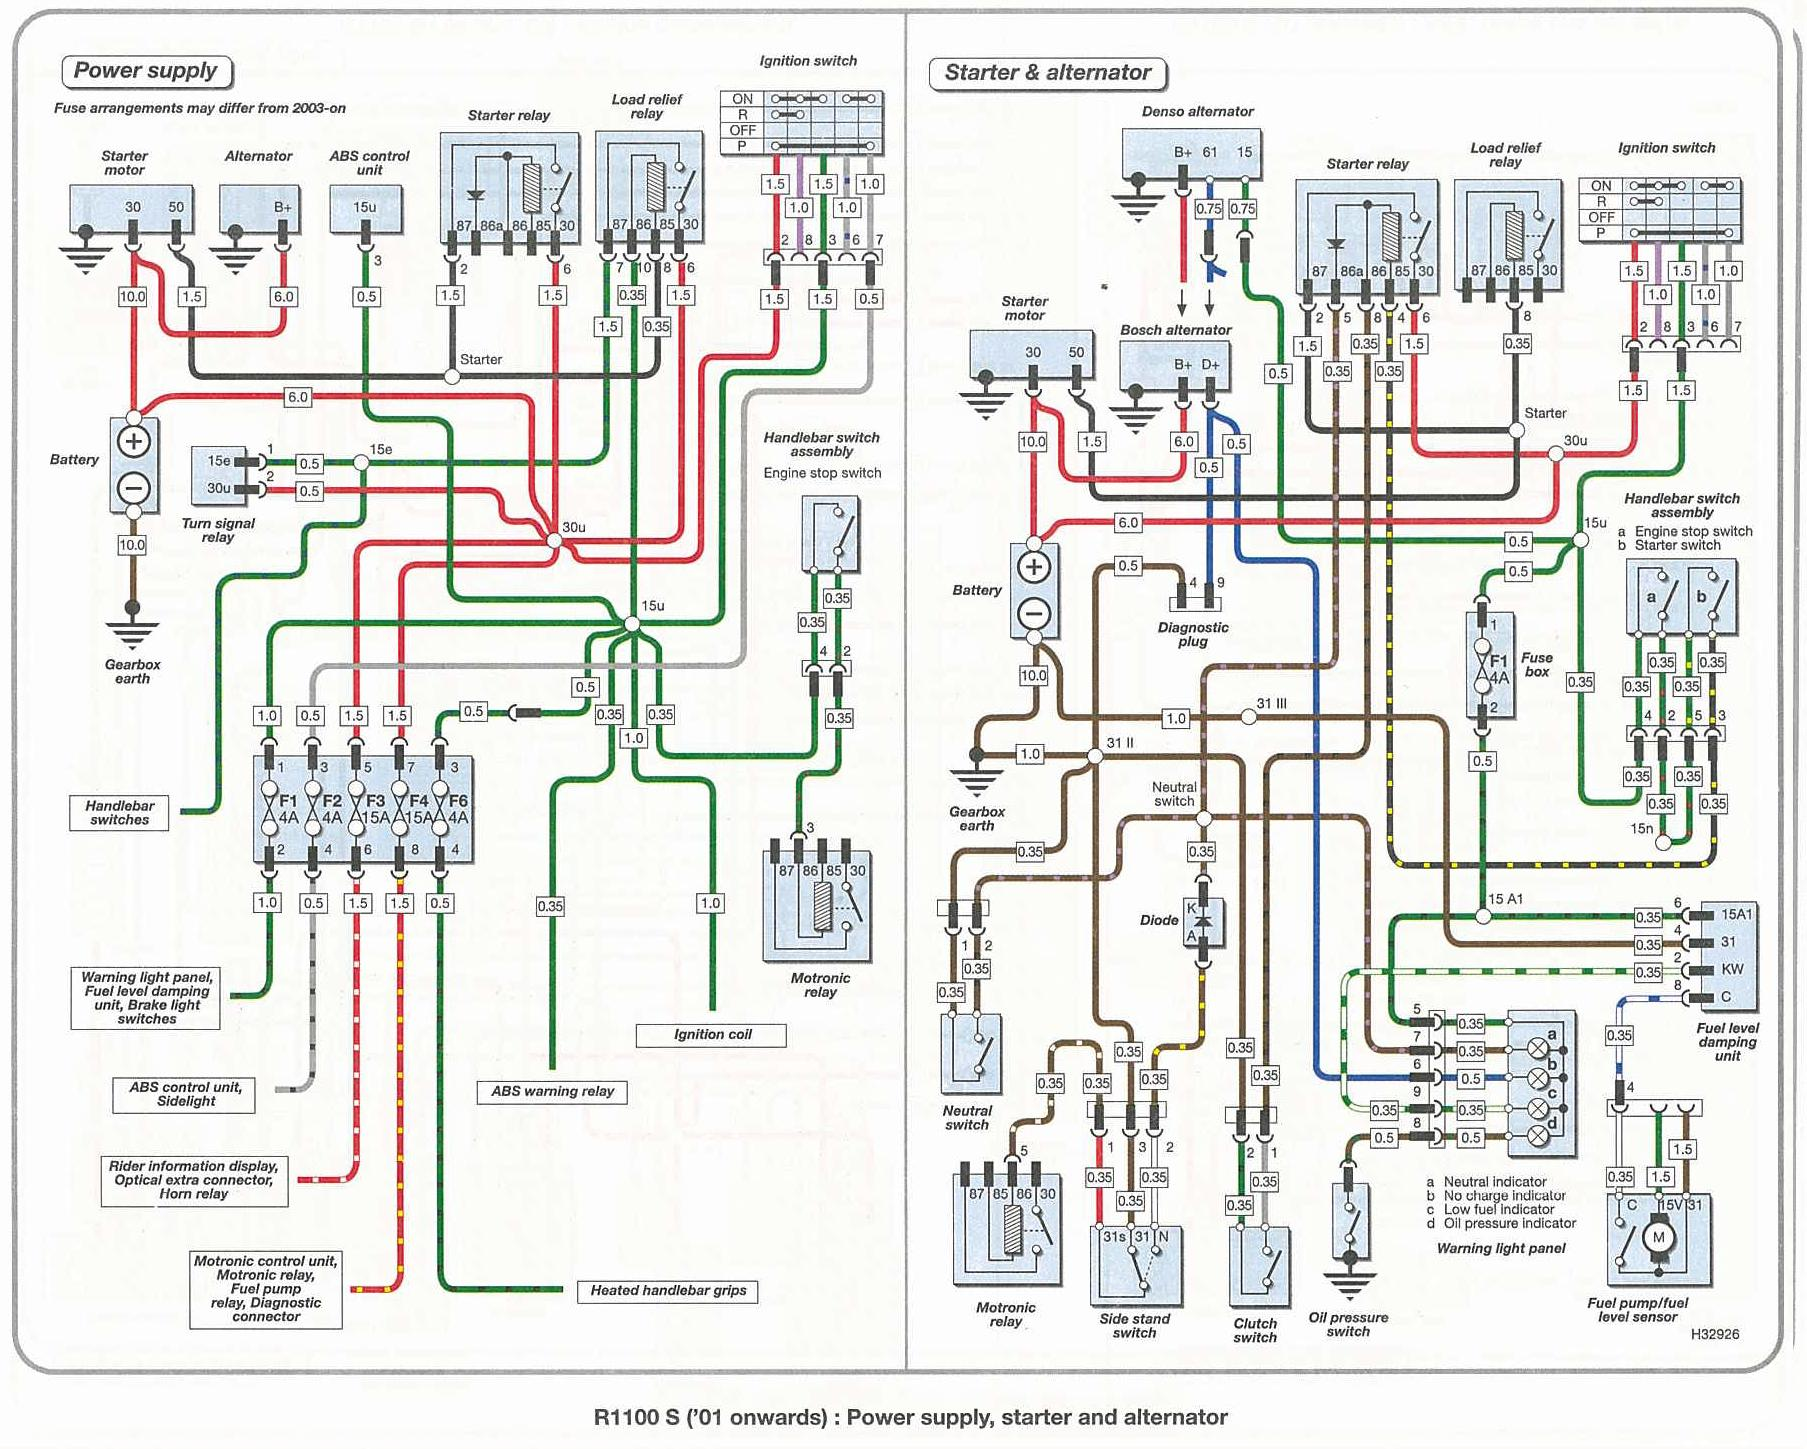 wiring05 bmw r1100s wiring diagrams f650 wiring diagram at mifinder.co